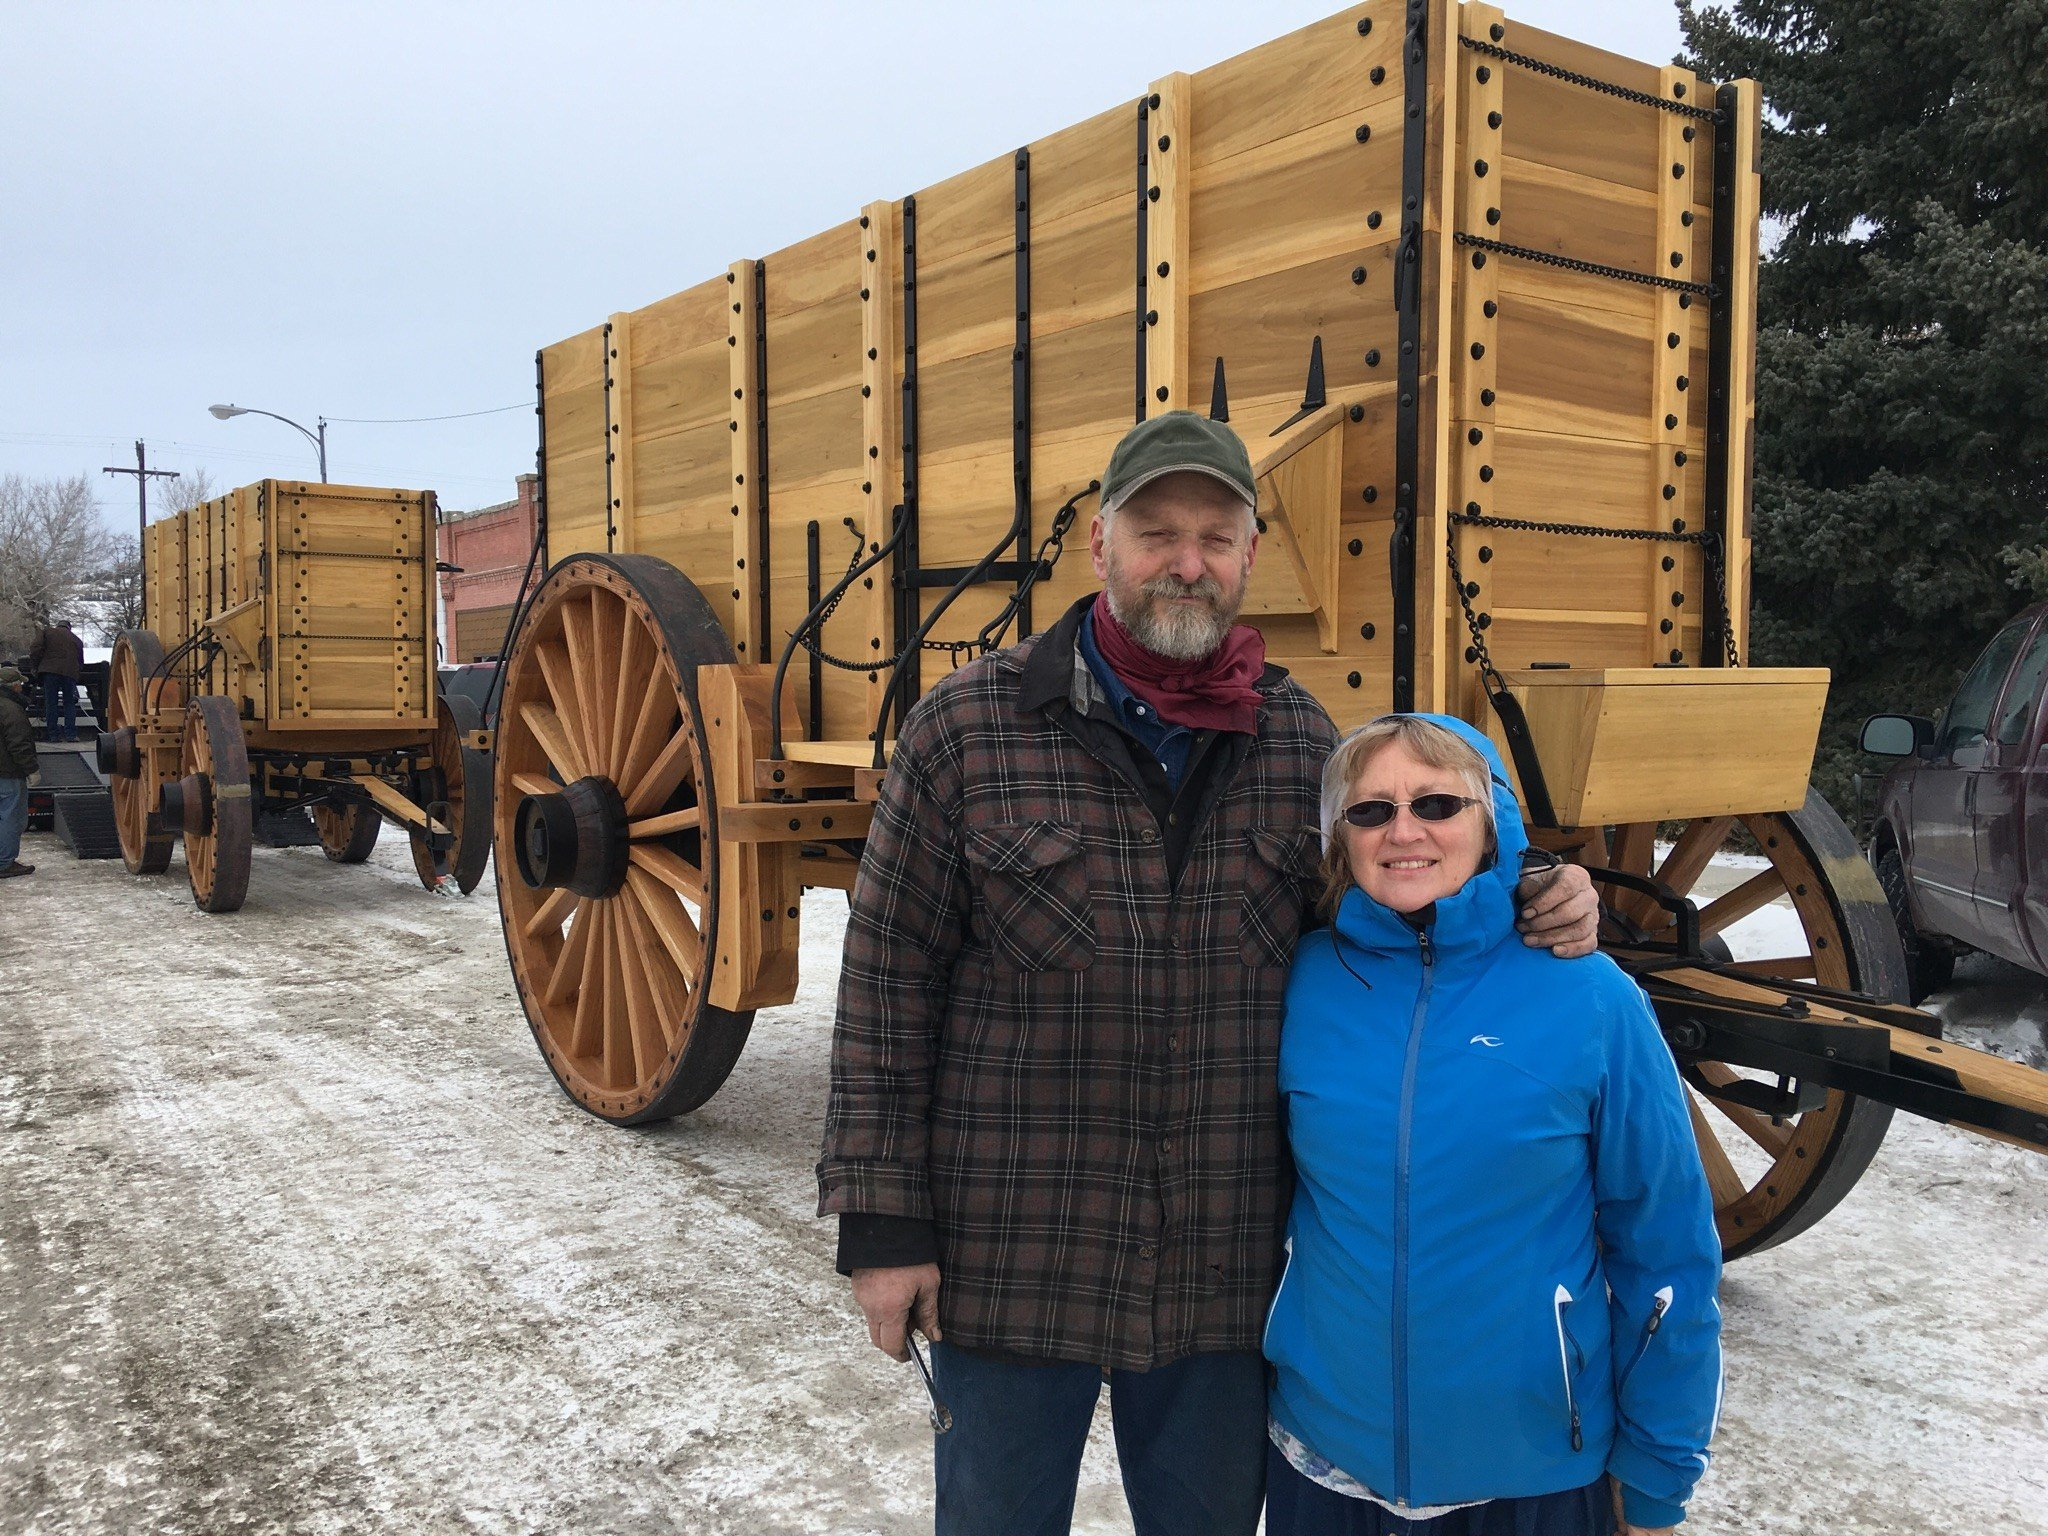 Dave and Diane stood in front of the creations before the wagons were shipped to California on Tuesday. (MTN News Photo)